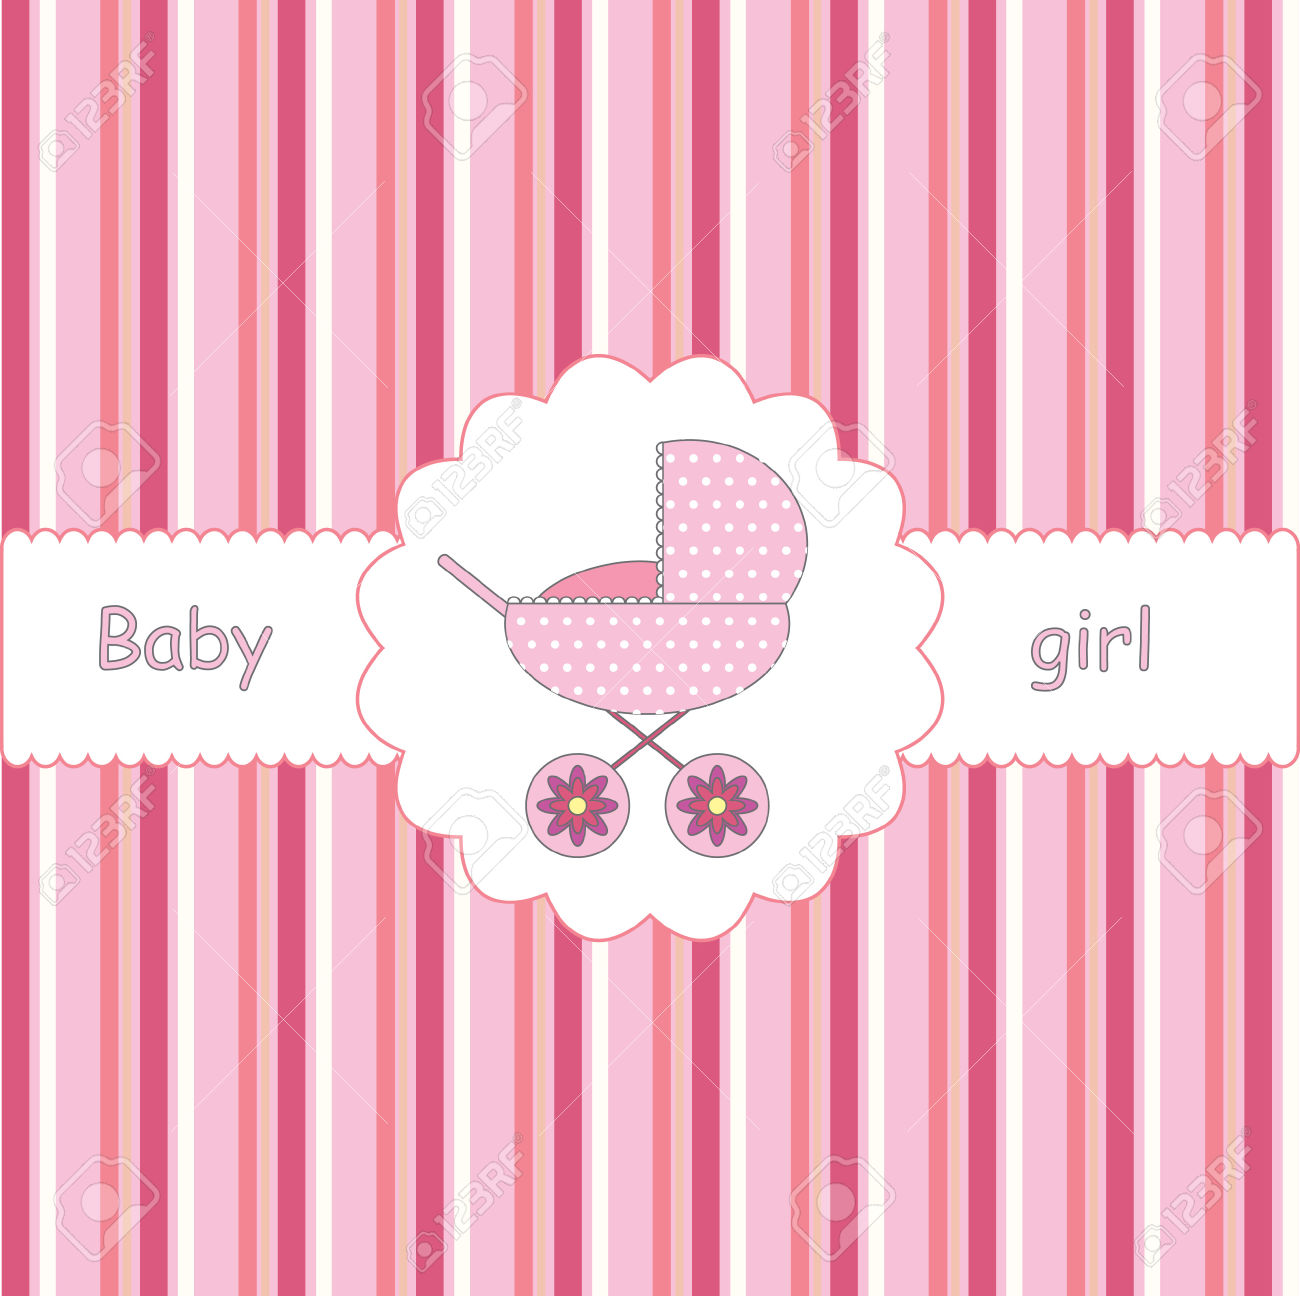 Download Baby Shower Wallpaper Free Gallery